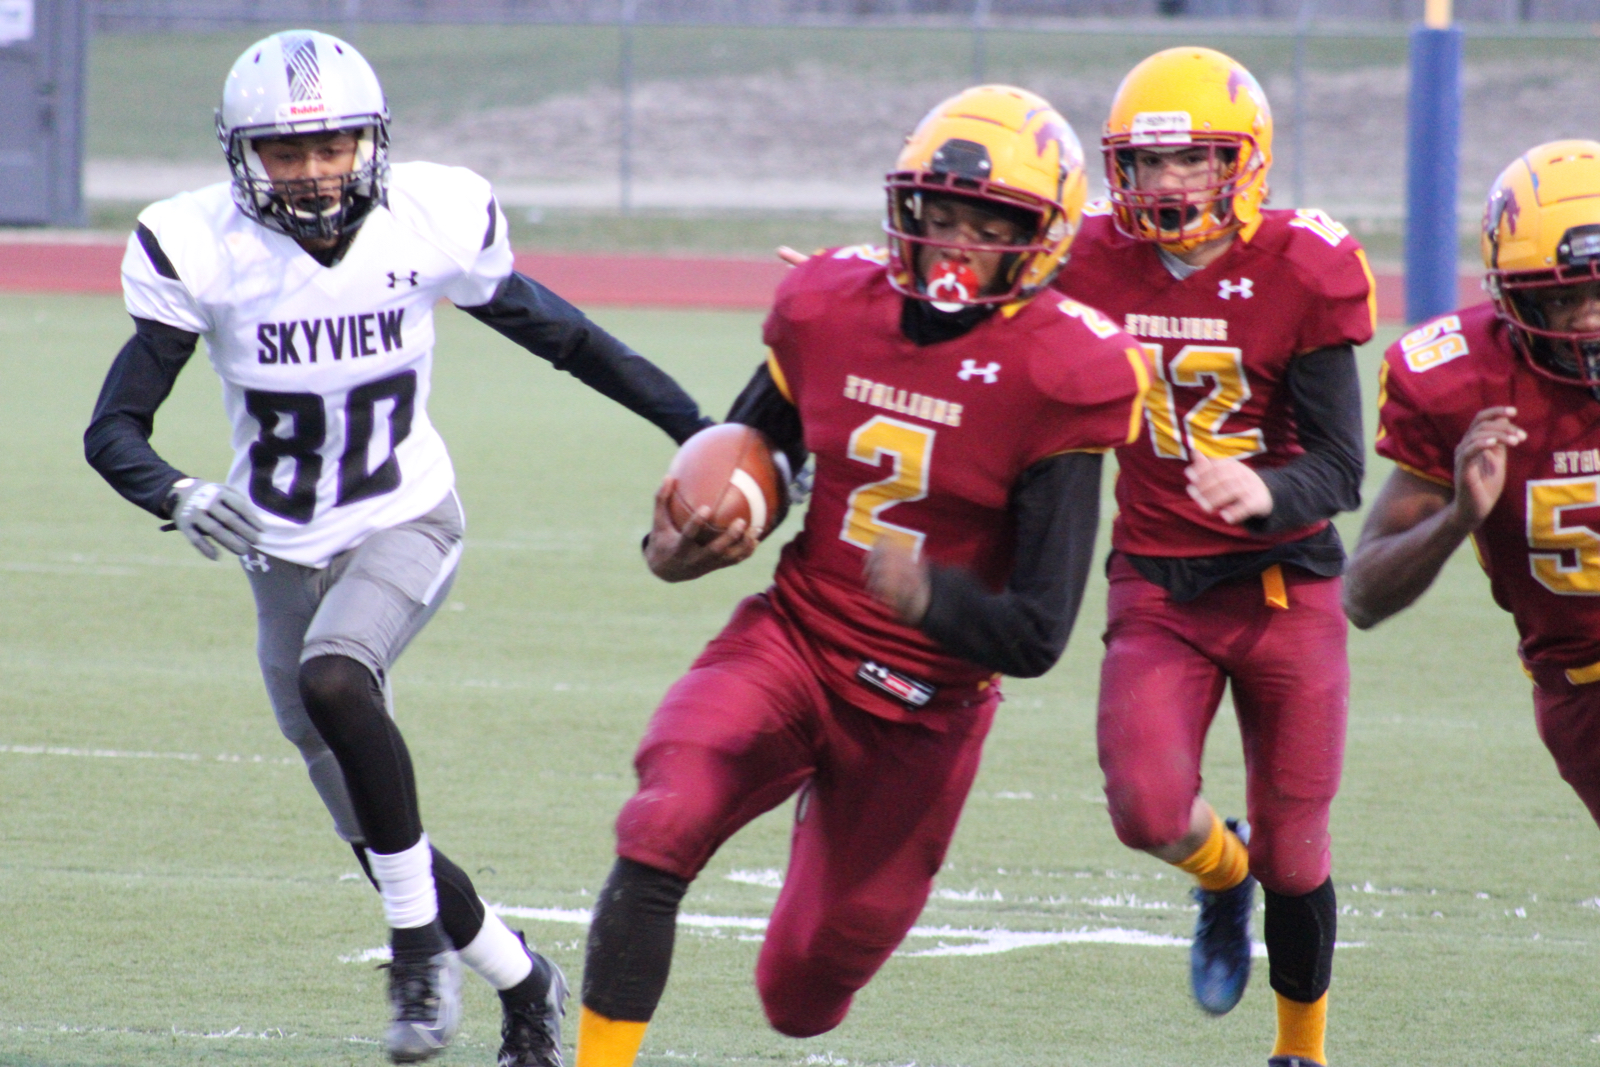 Photo Gallery: Football vs. Skyview